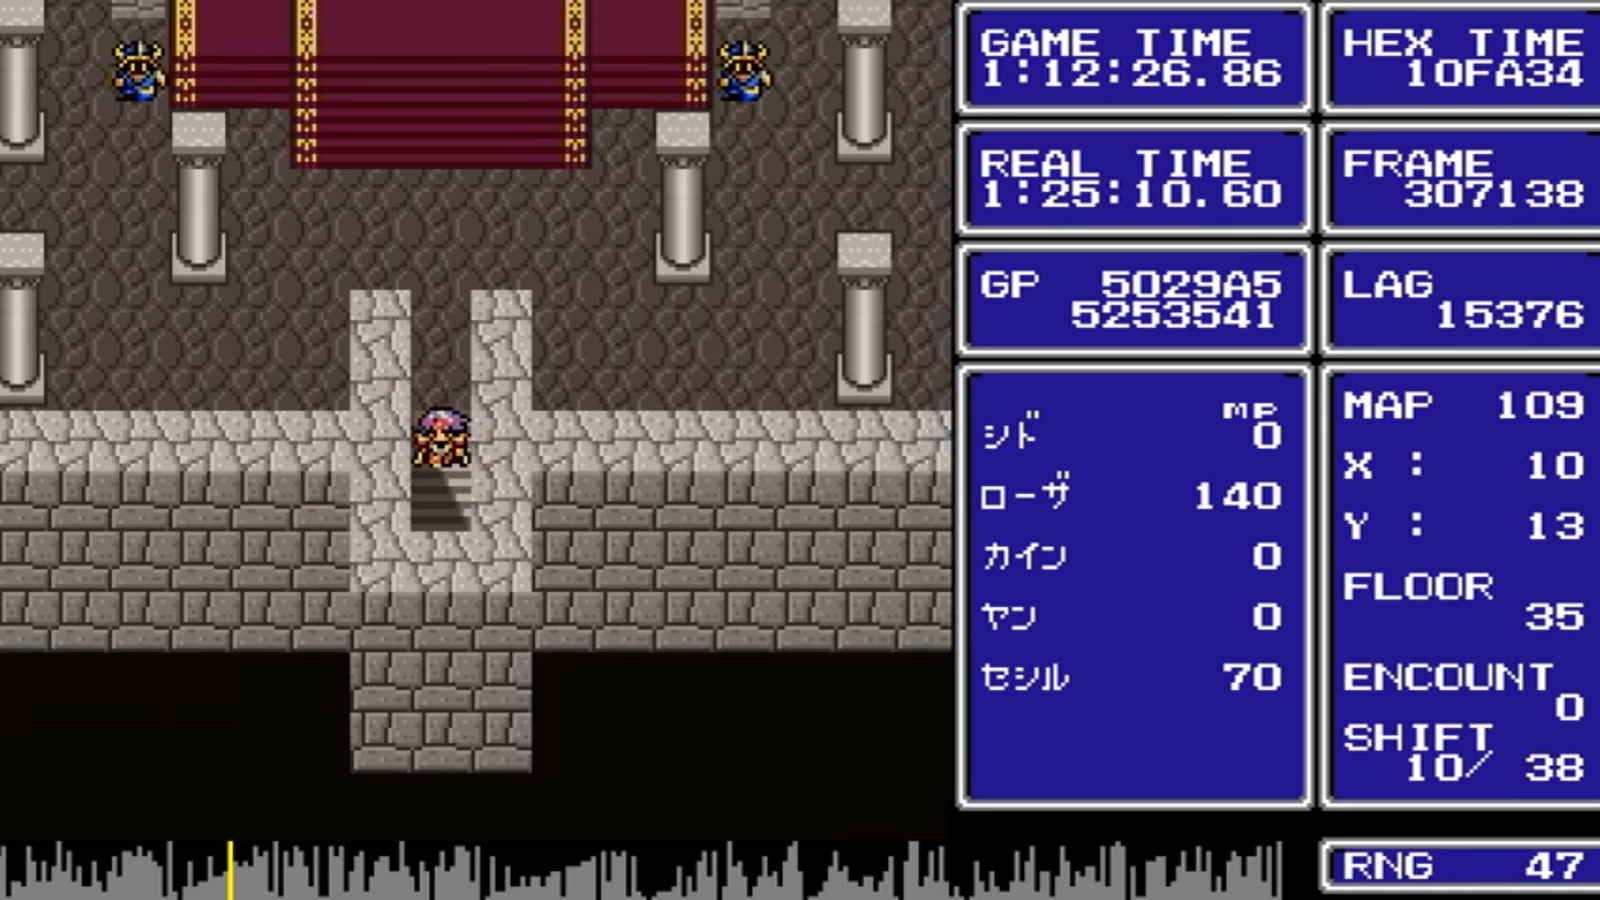 How To Skip Half Of Final Fantasy IV By Climbing Stairs